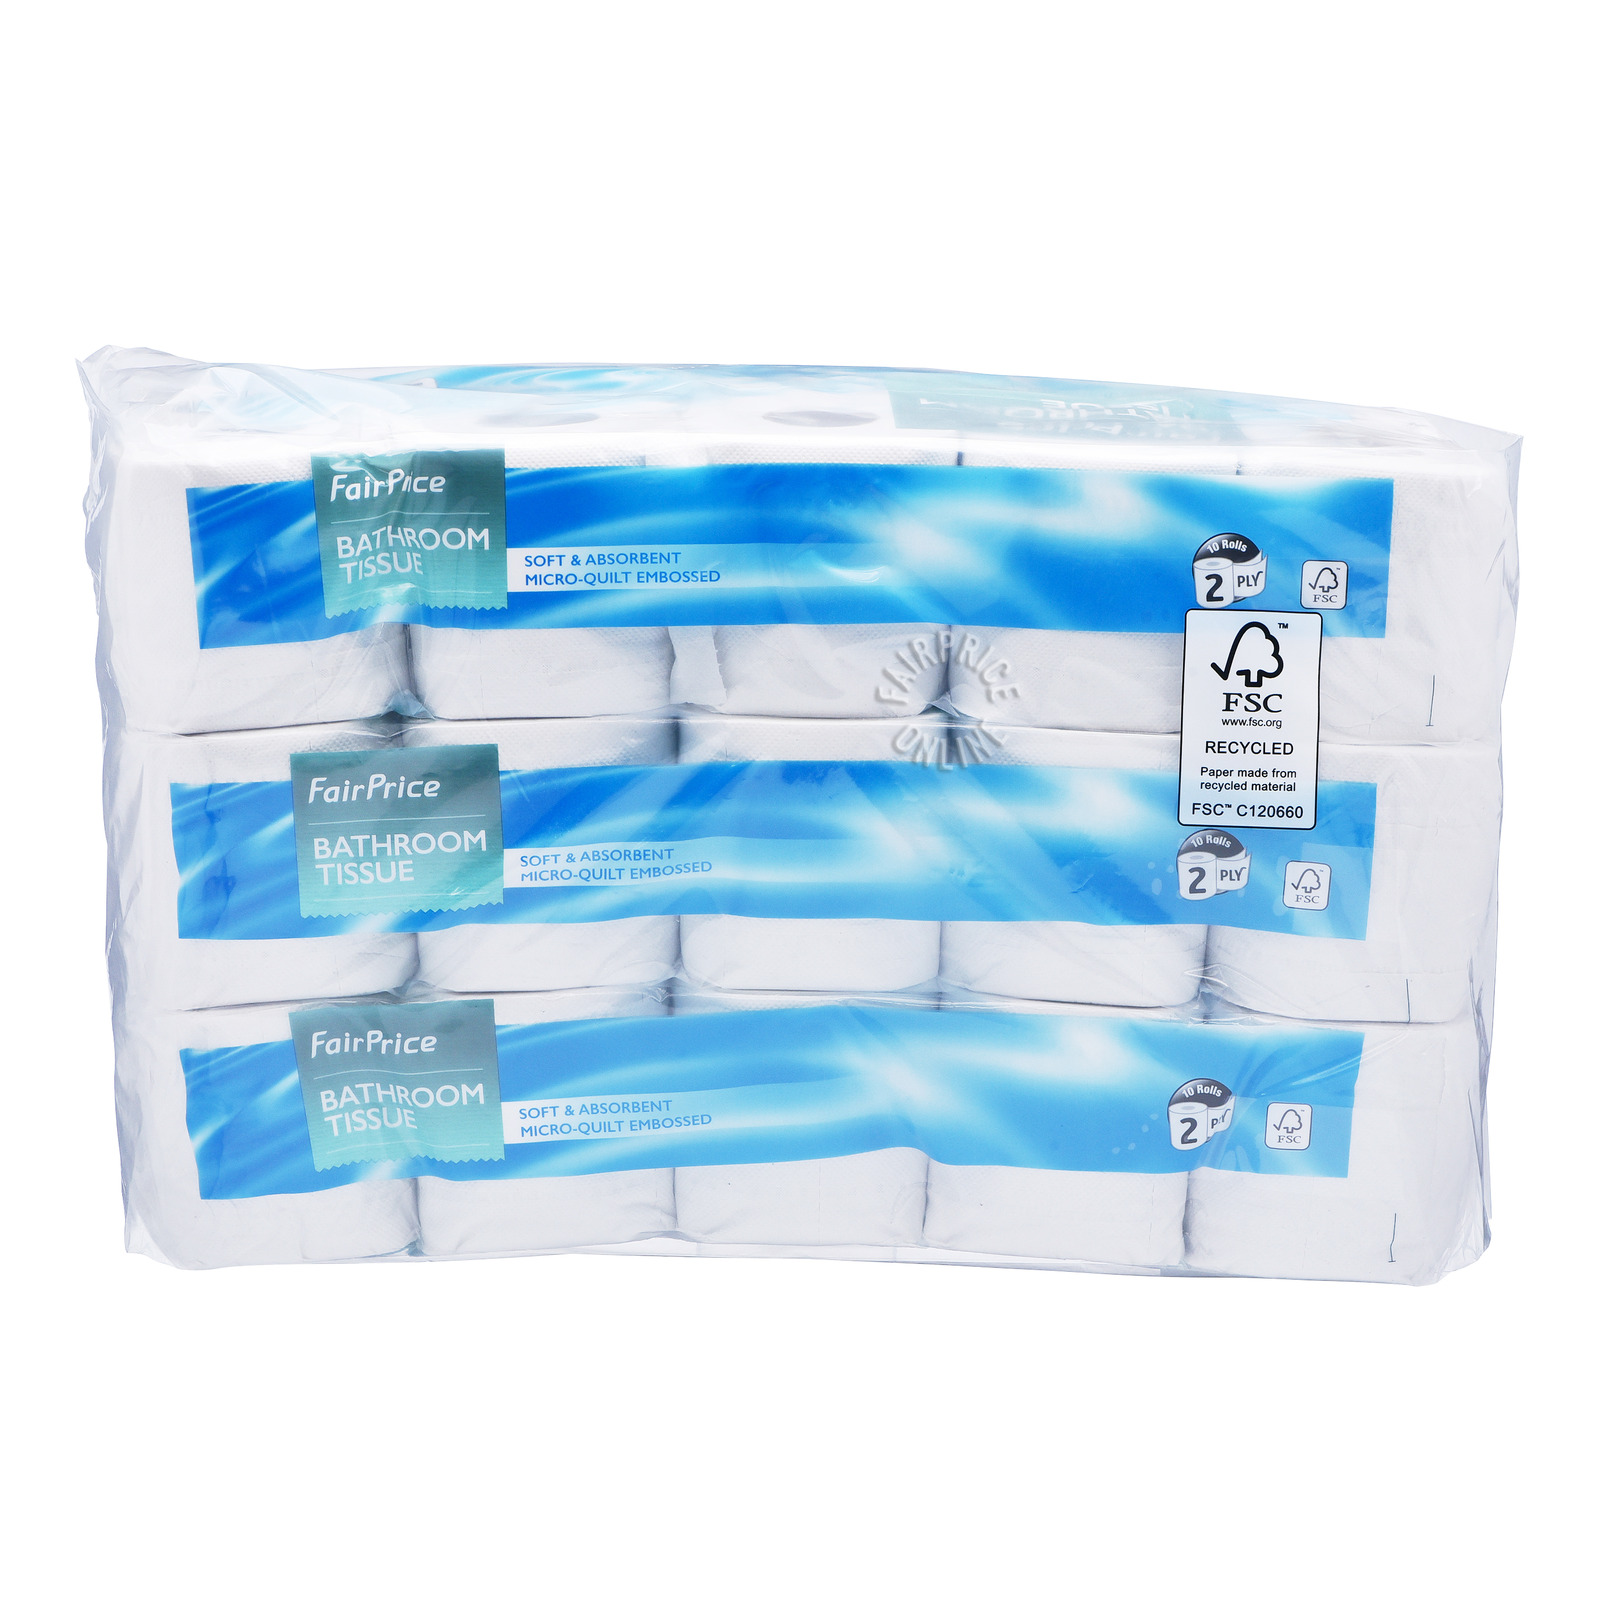 FairPrice Bathroom Tissue Rolls (2ply)